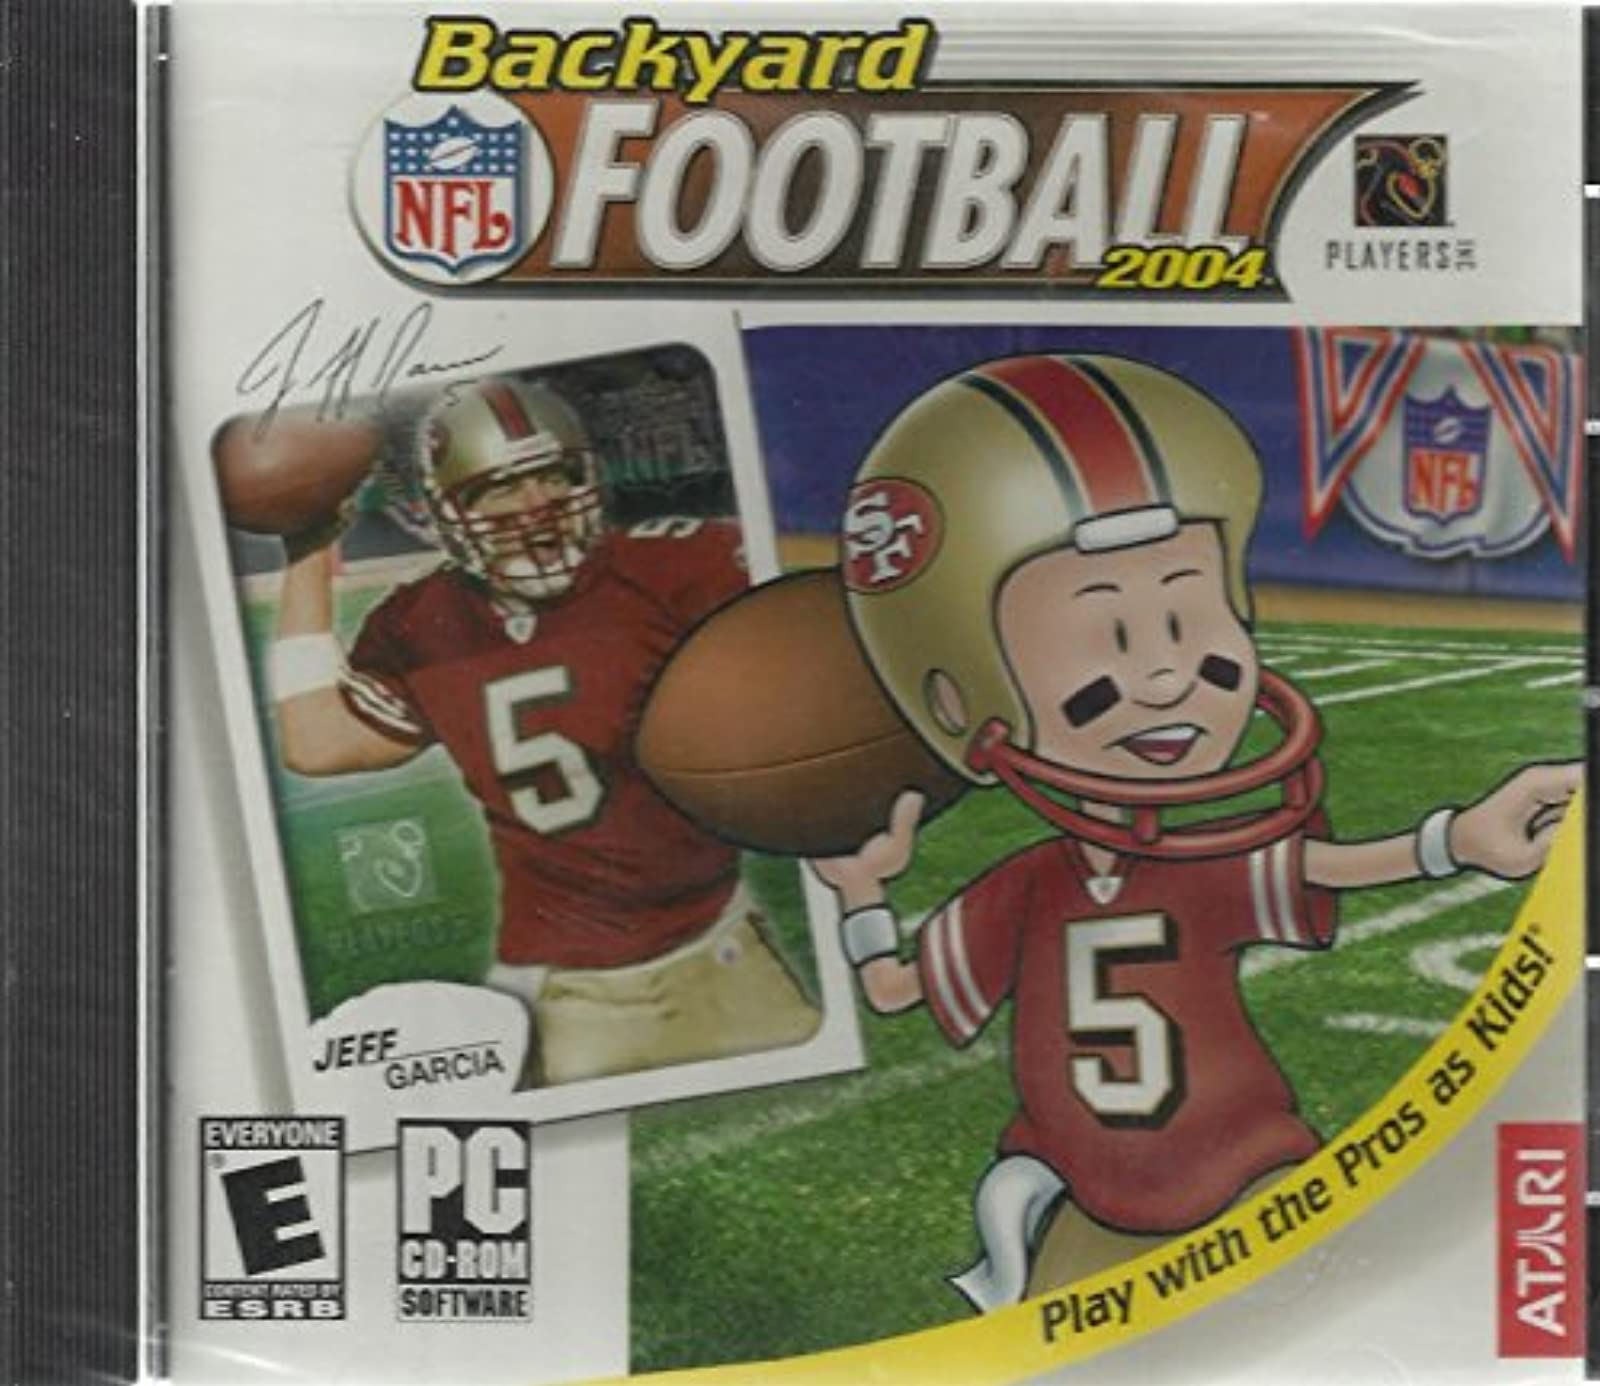 Backyard Football Play With The Pro's As Kids! Windows 98/XP Software